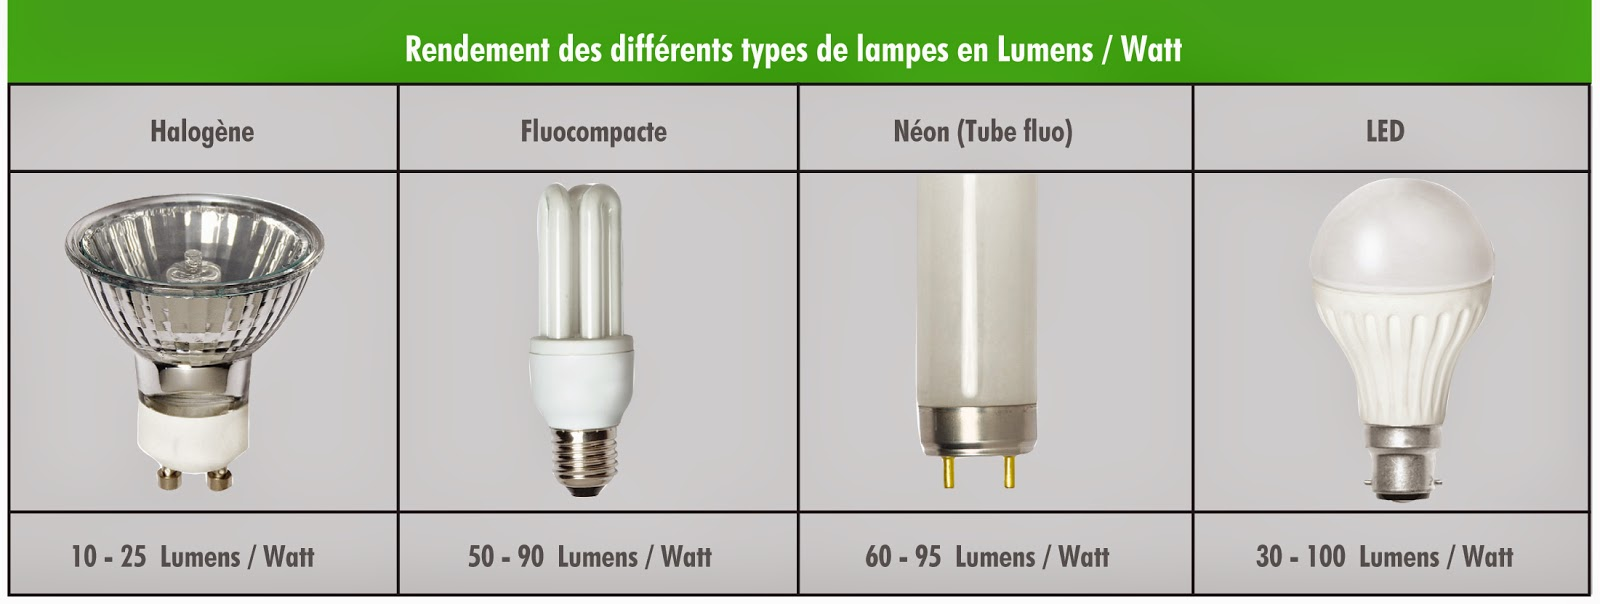 Lampe n on couleur fashion designs - Ampoule basse consommation gratuite ...